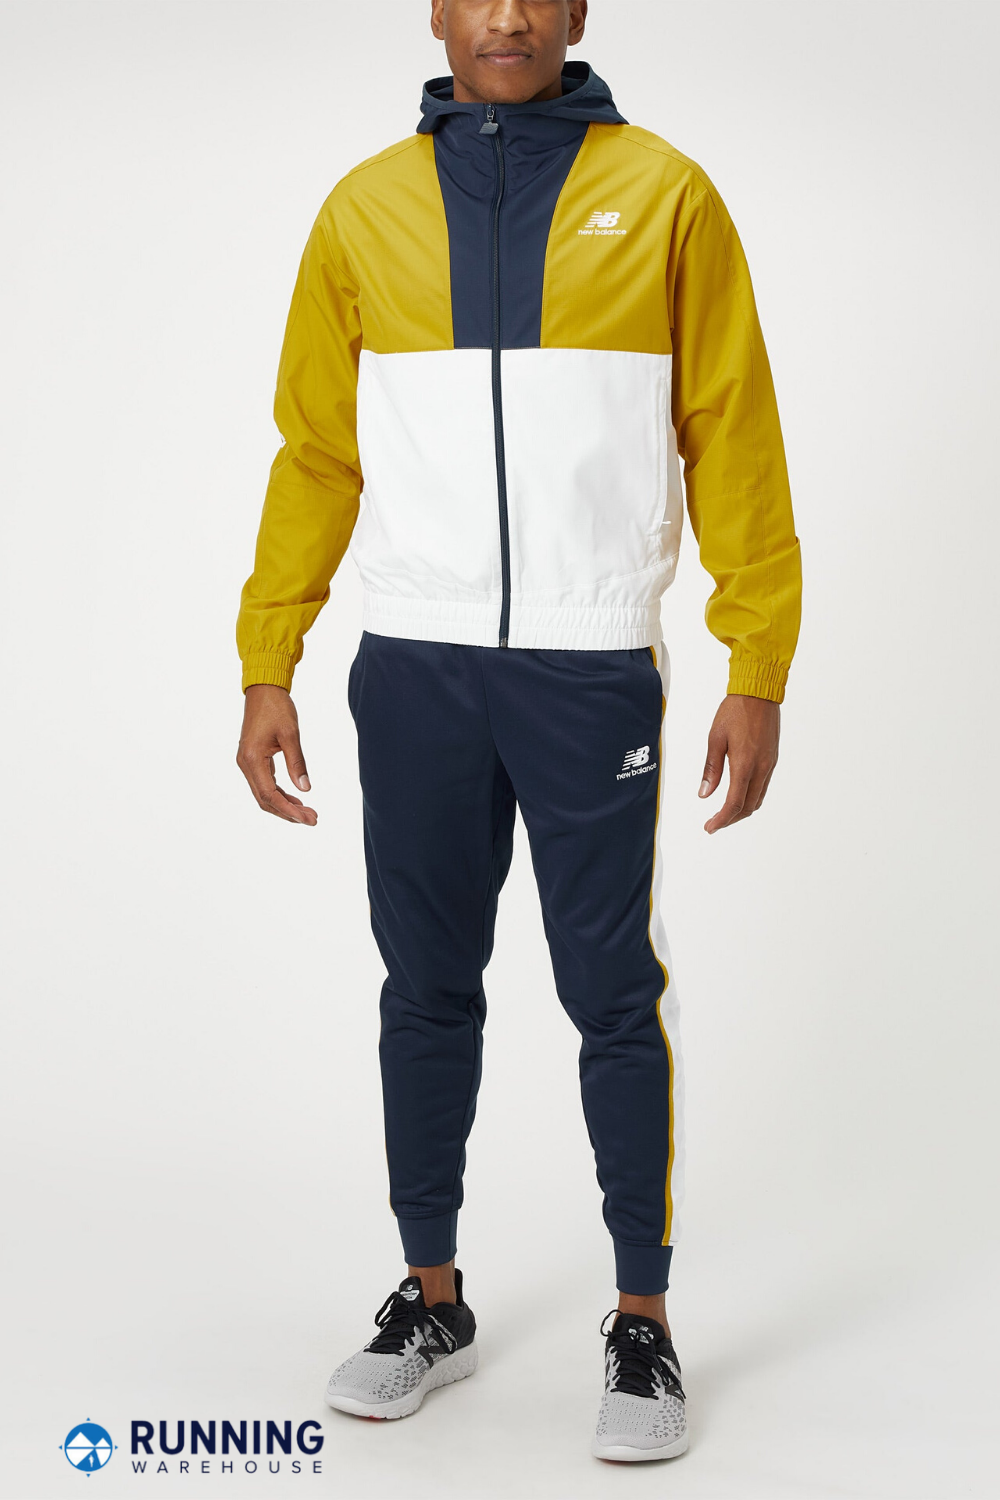 acceso vistazo Actor  The New Balance Men's Spring Athletics Full Zip Windbreaker is the perfect  companion on a temperamental spring day. … in 2020   Athleisure men, Mens  spring, New balance men